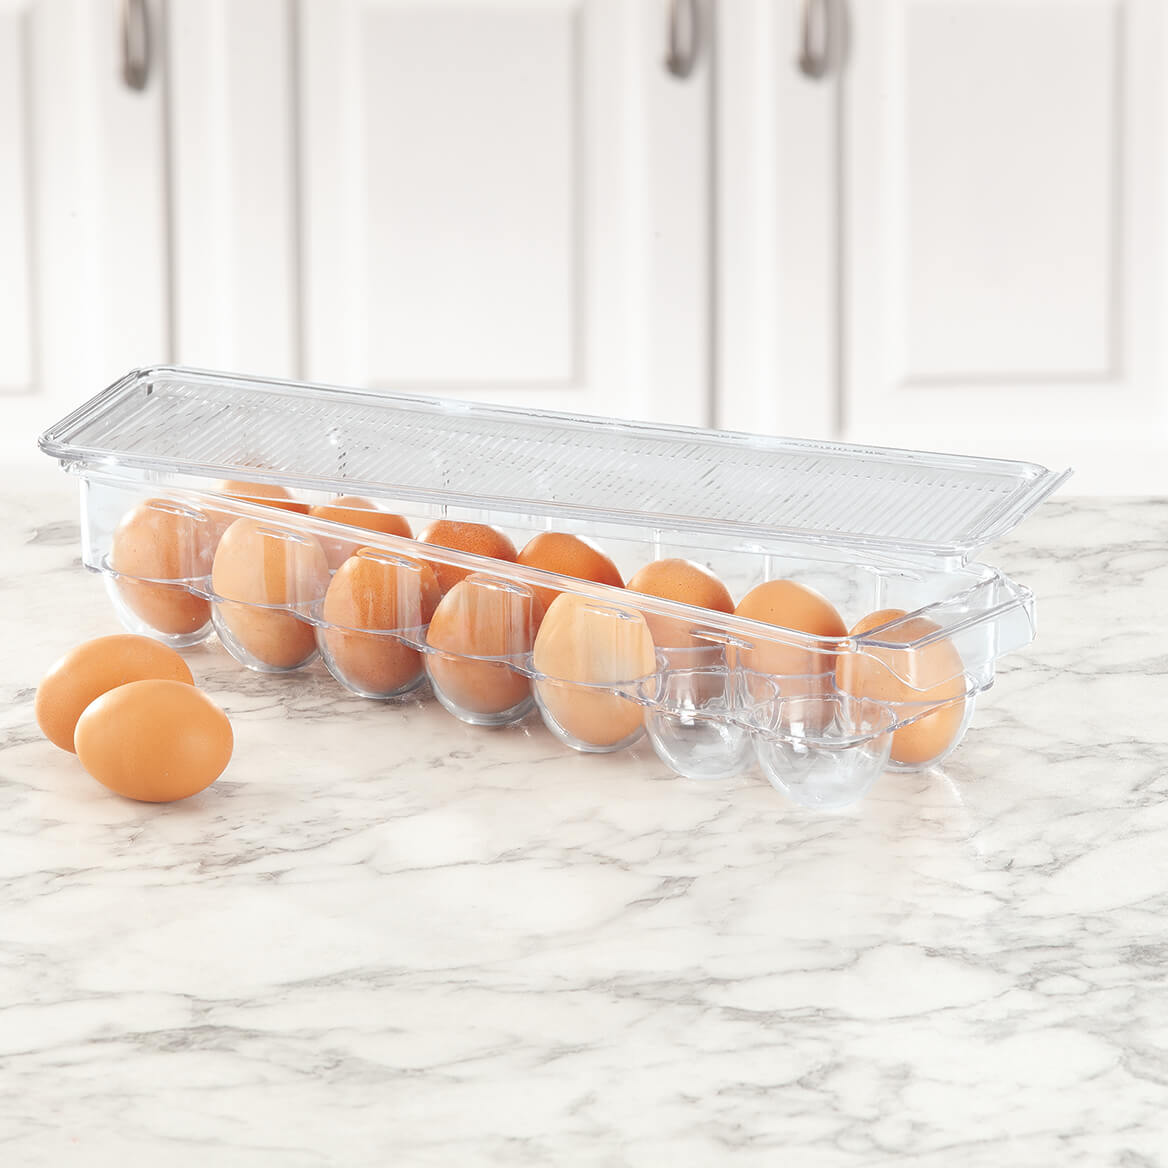 Wolfgang Puck Egg Container-370760